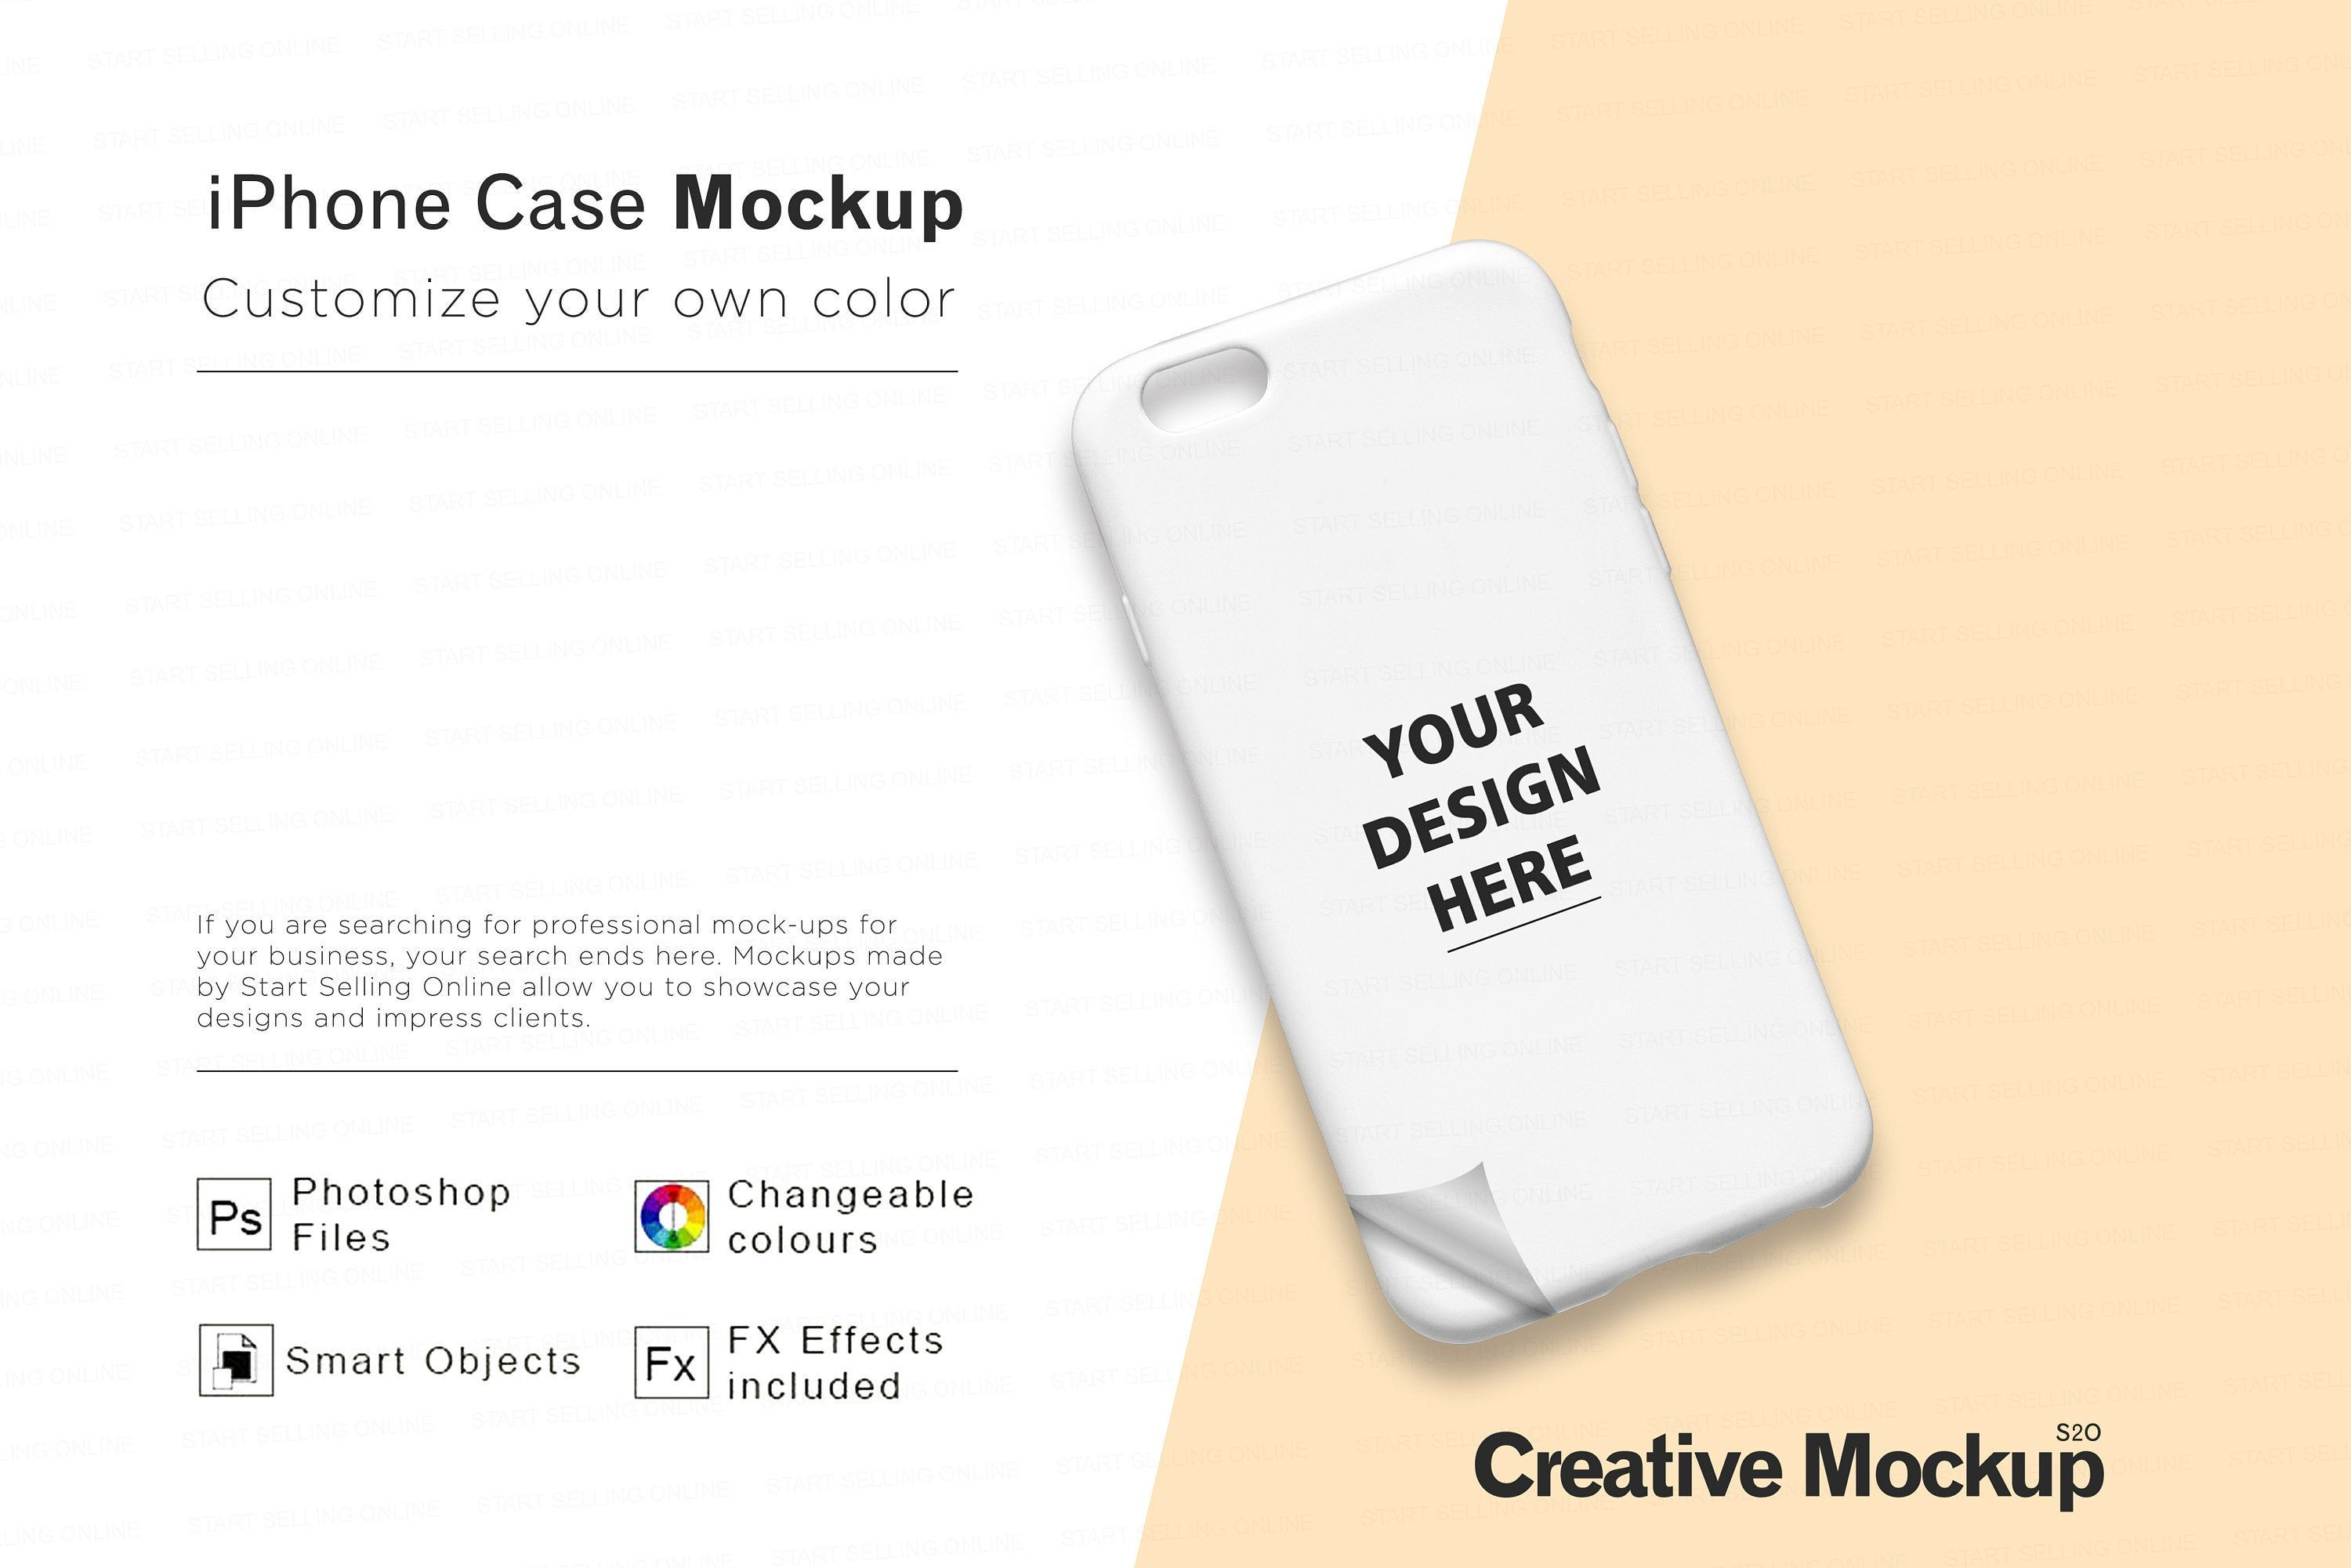 iPhone Case Mockup High Resolution Smart Objects